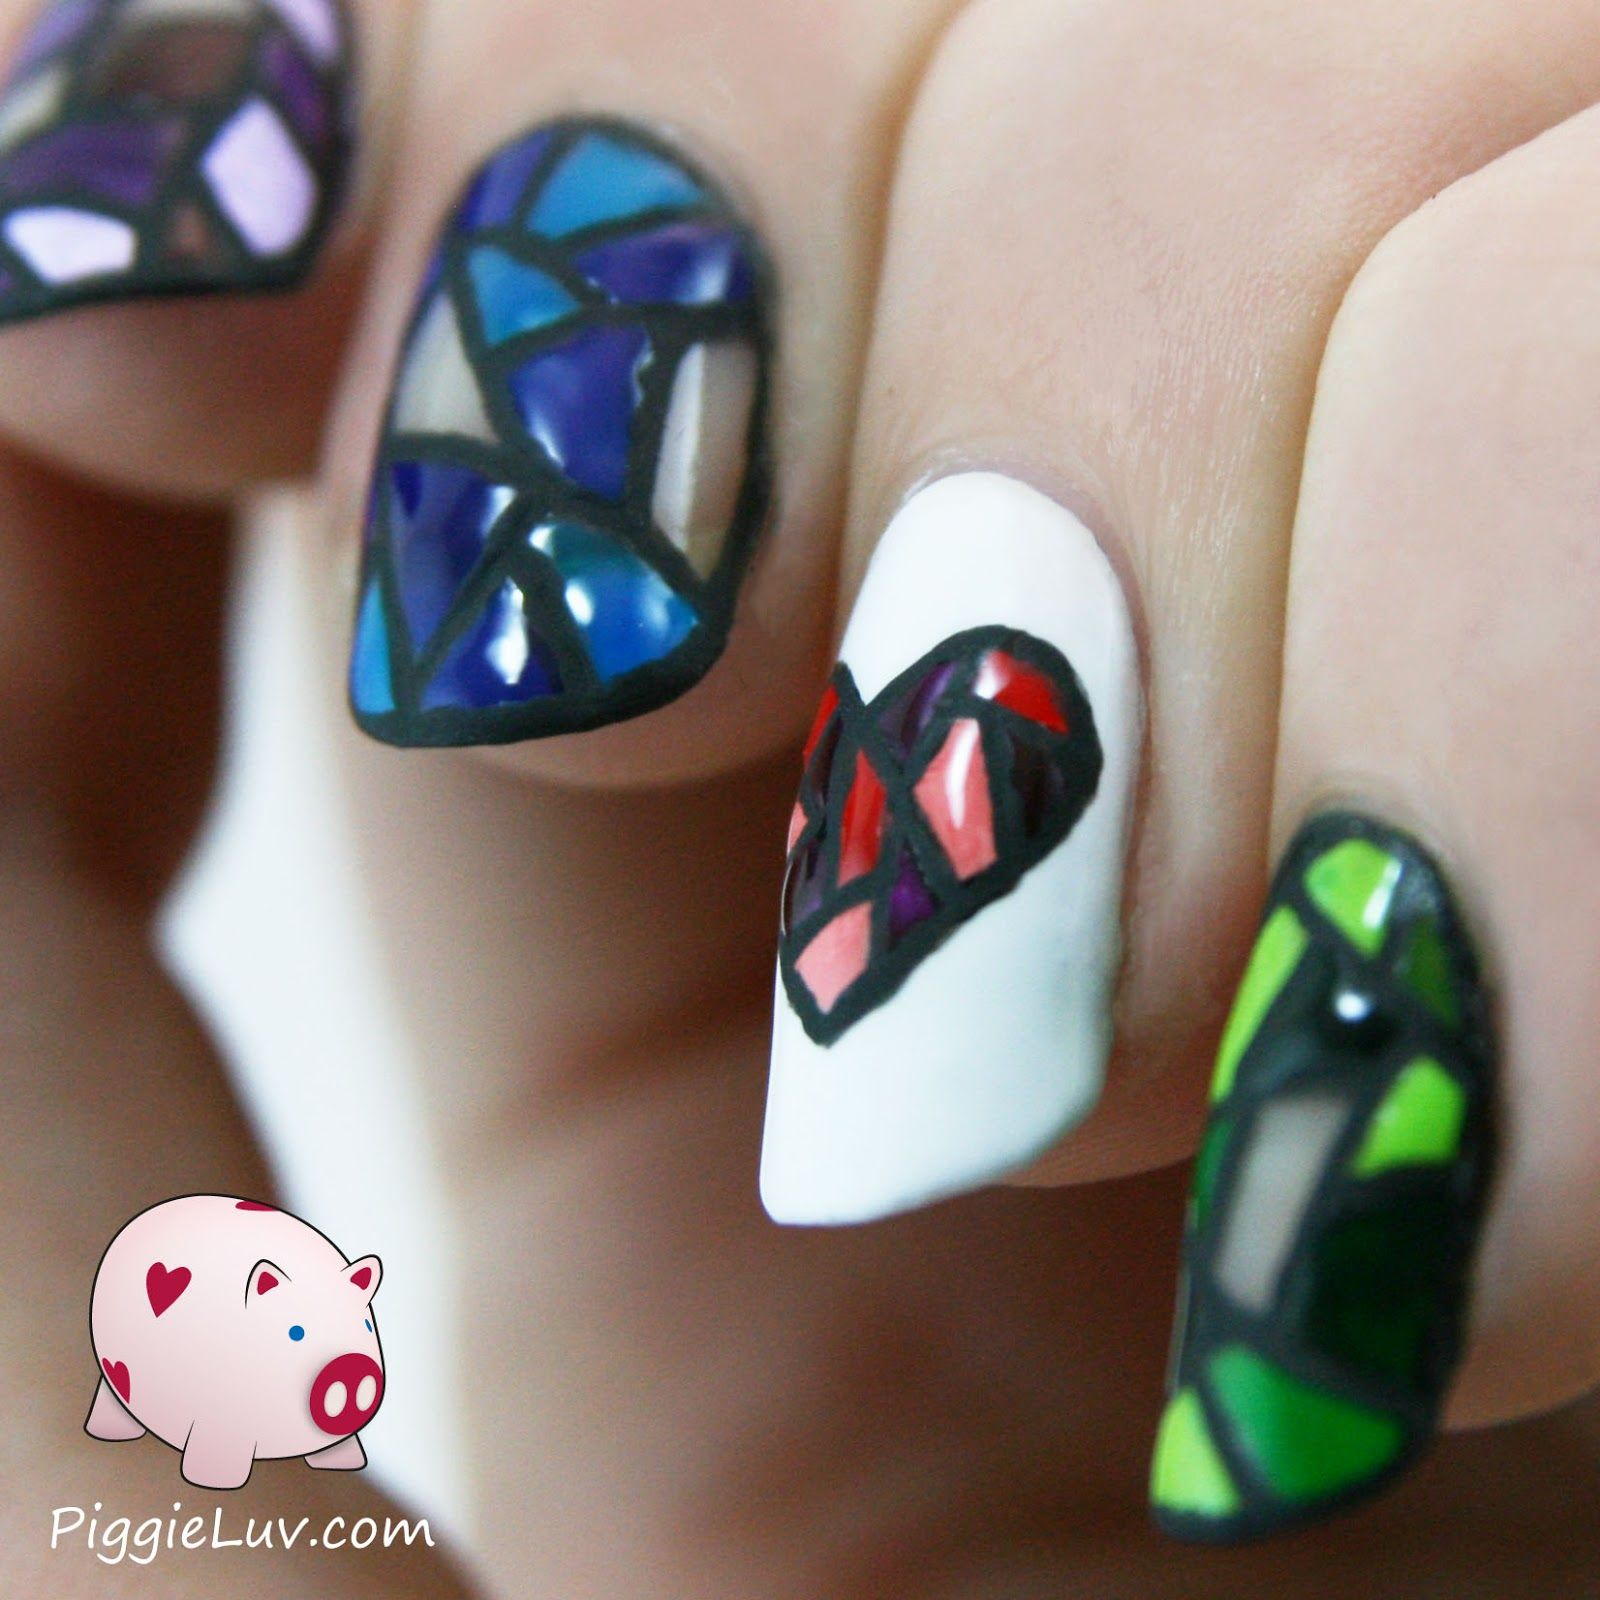 Stained glass twin nails!